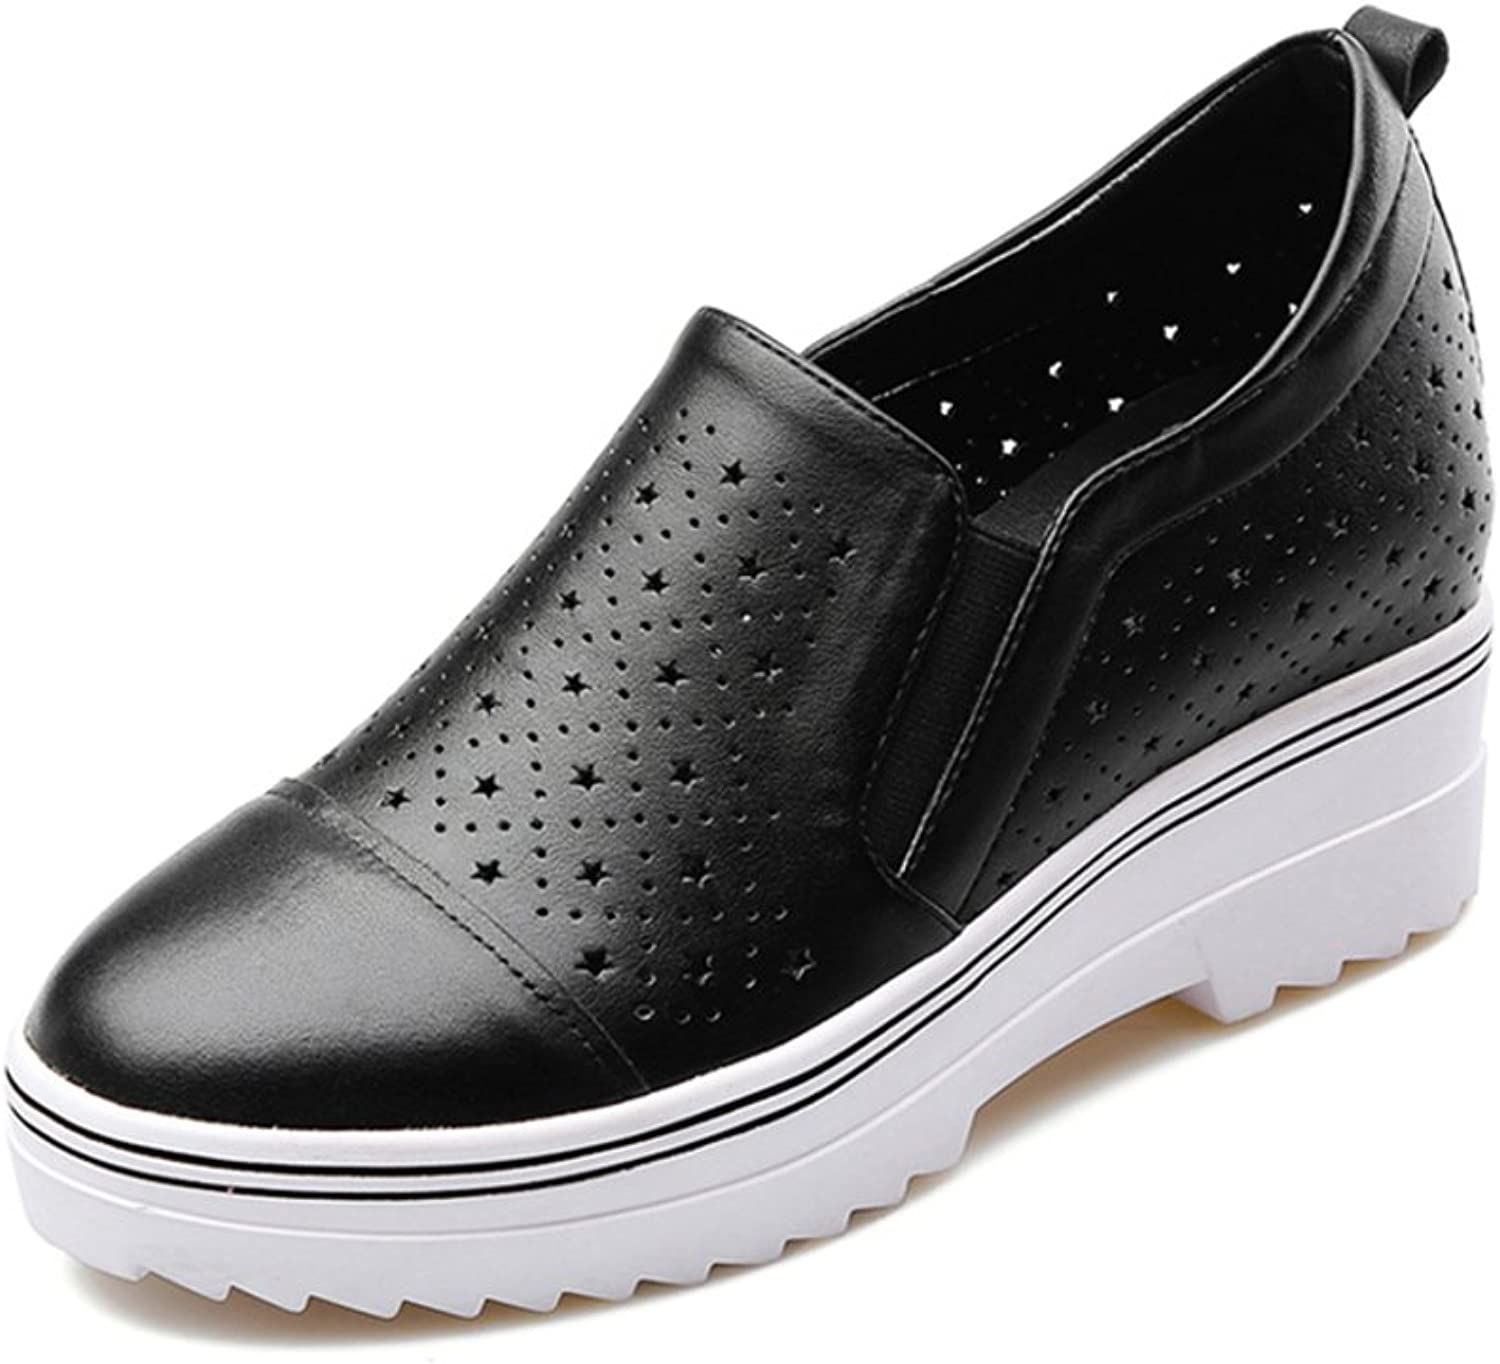 Lok Fu leather shoes Leisure breathable hollow leather shoes within the higher